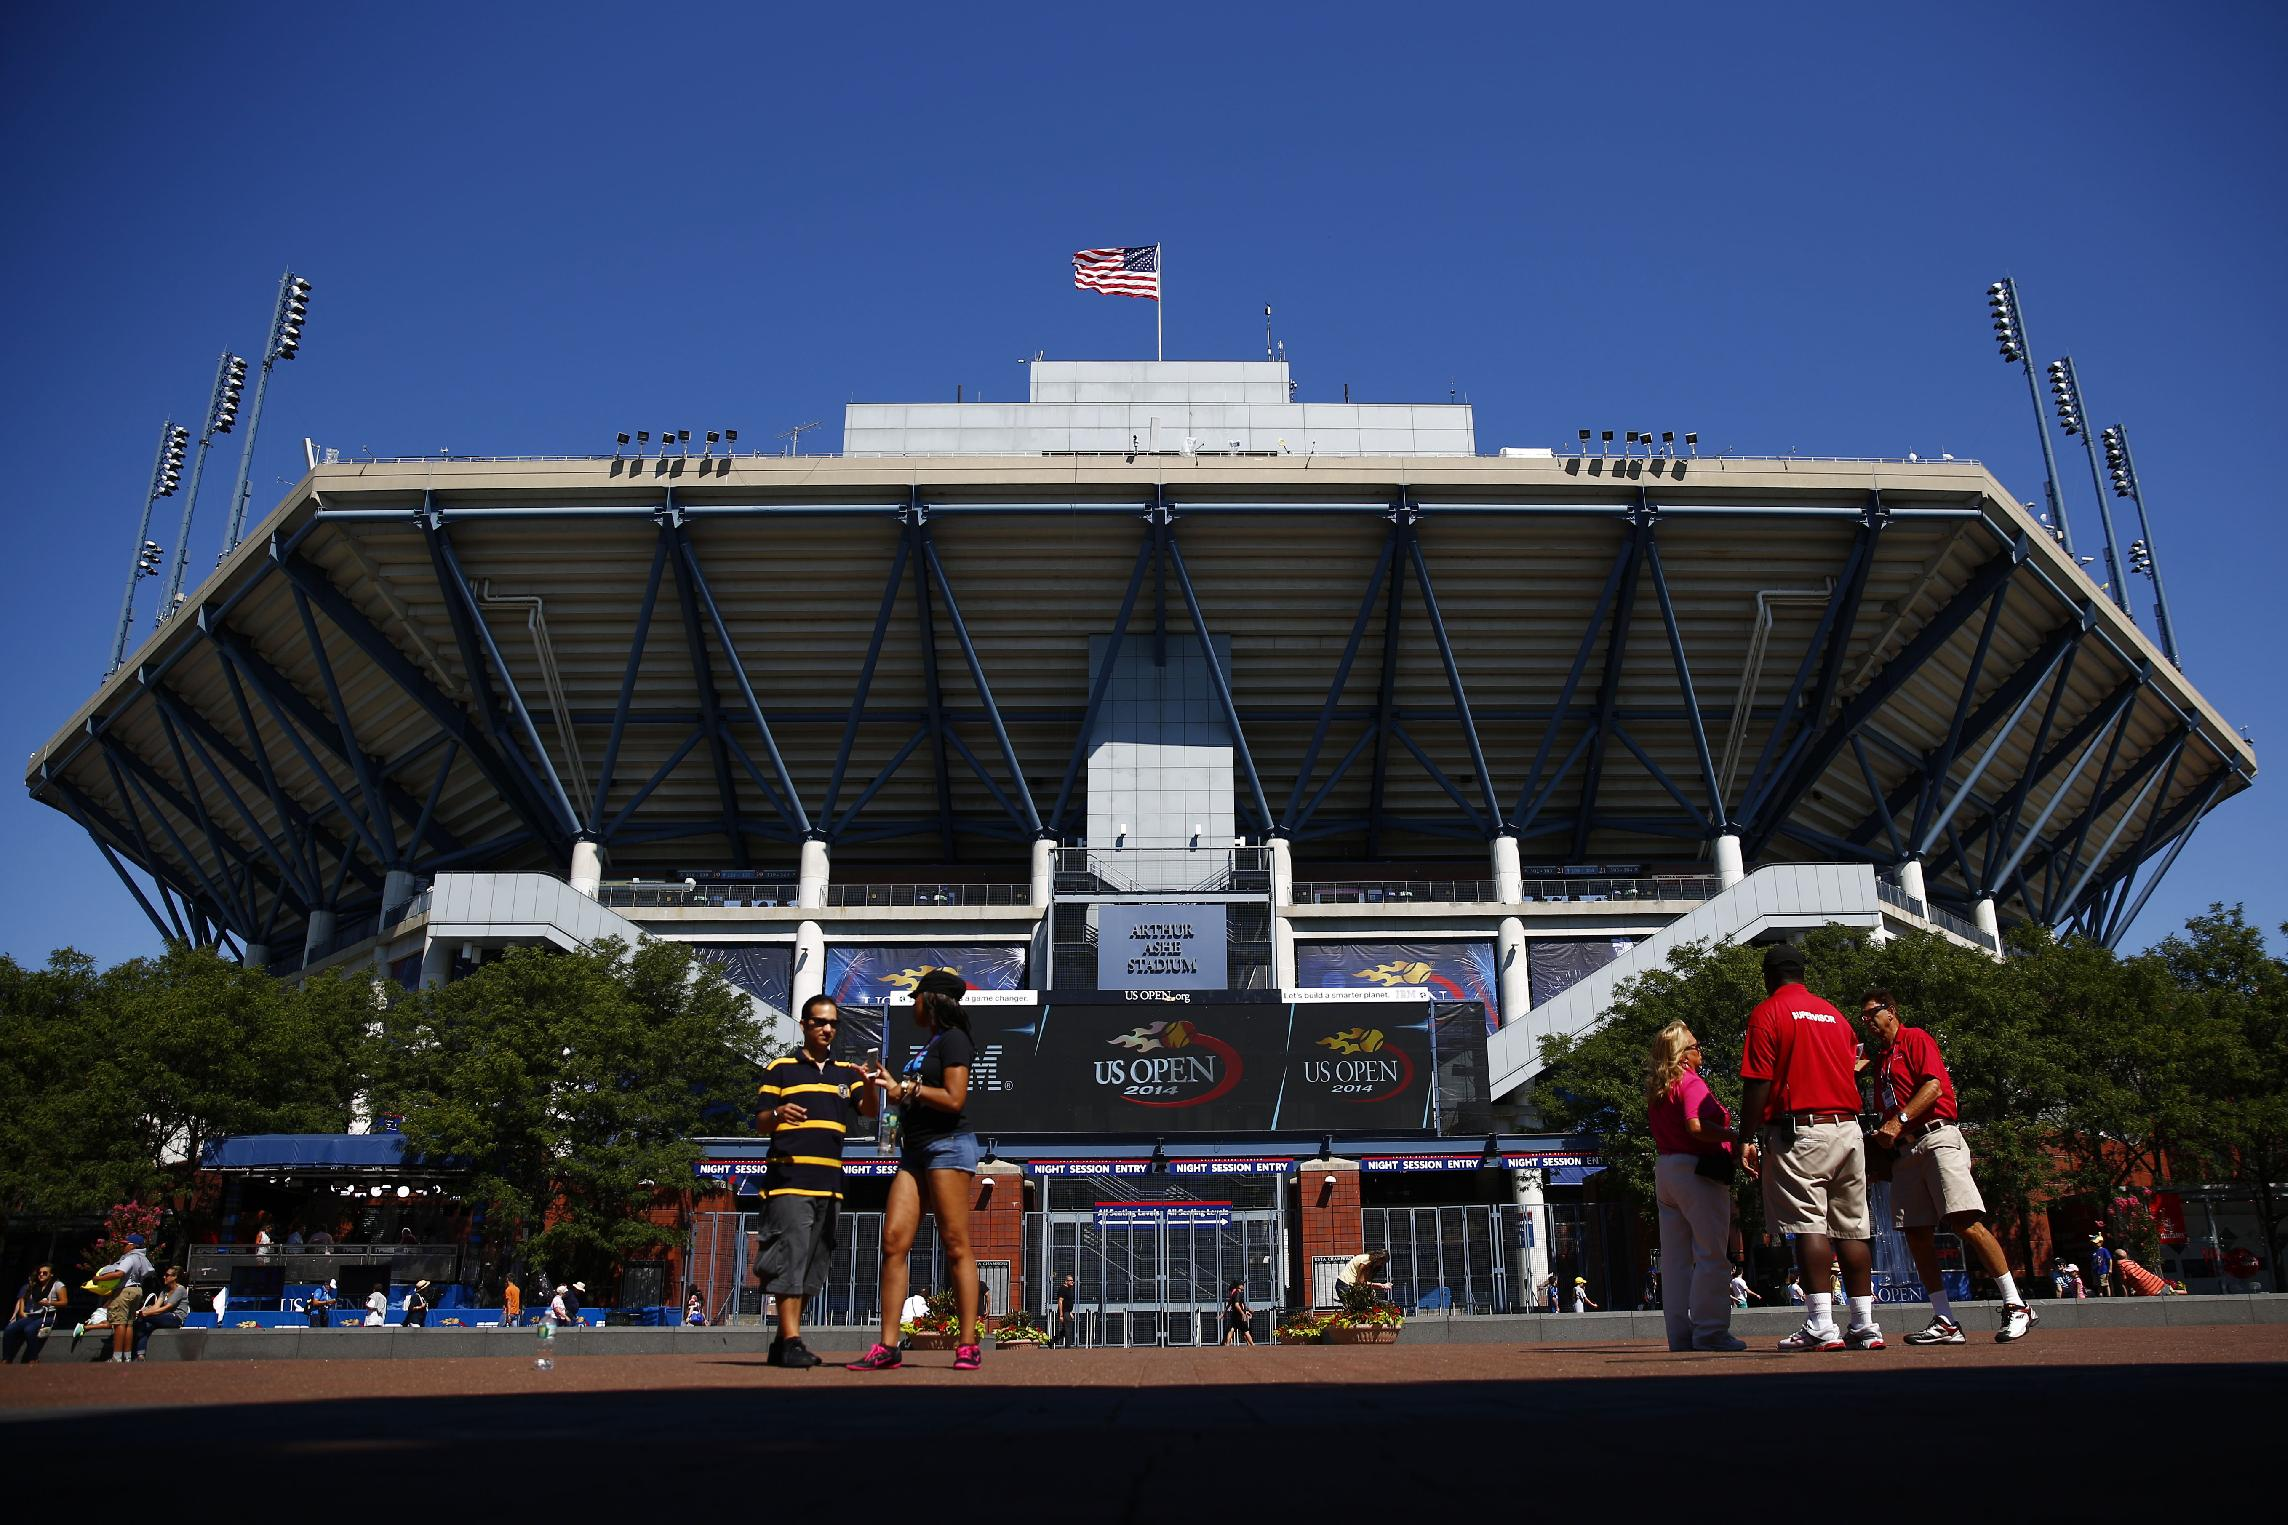 People walk past  Arthur Ashe Stadium ahead of the of the 2014 U.S. Open tennis tournament, Sunday, Aug. 24, 2014, in New York